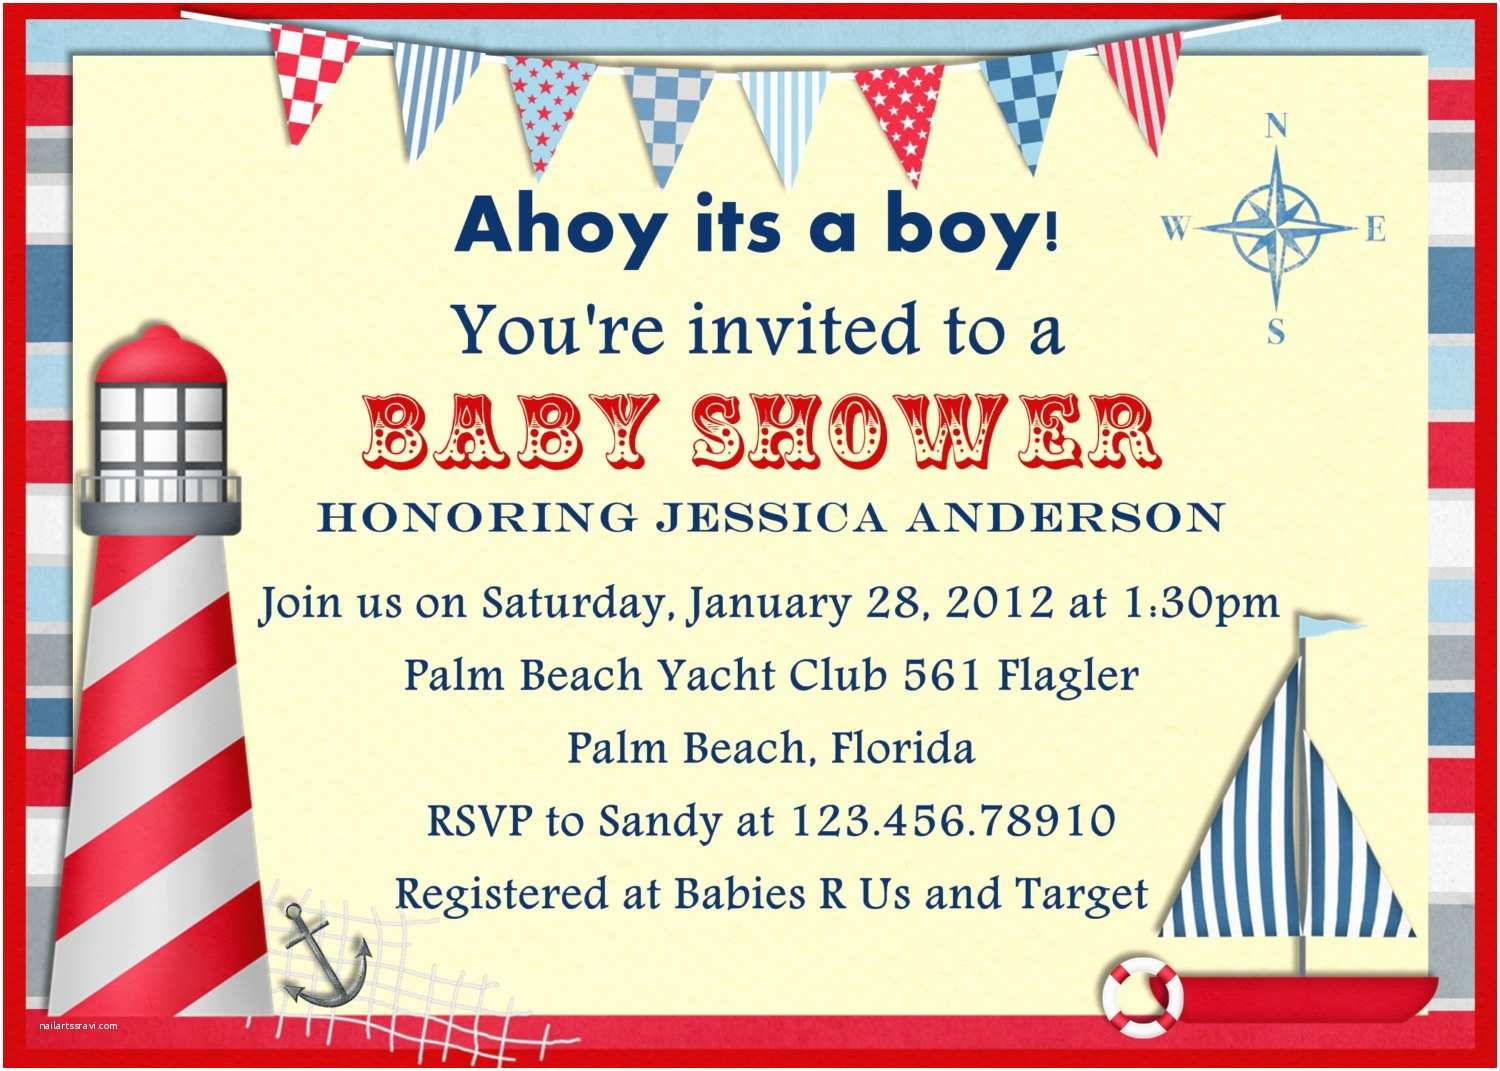 Nautical themed Baby Shower Invitations Template Nautical themed Baby Shower Invitations